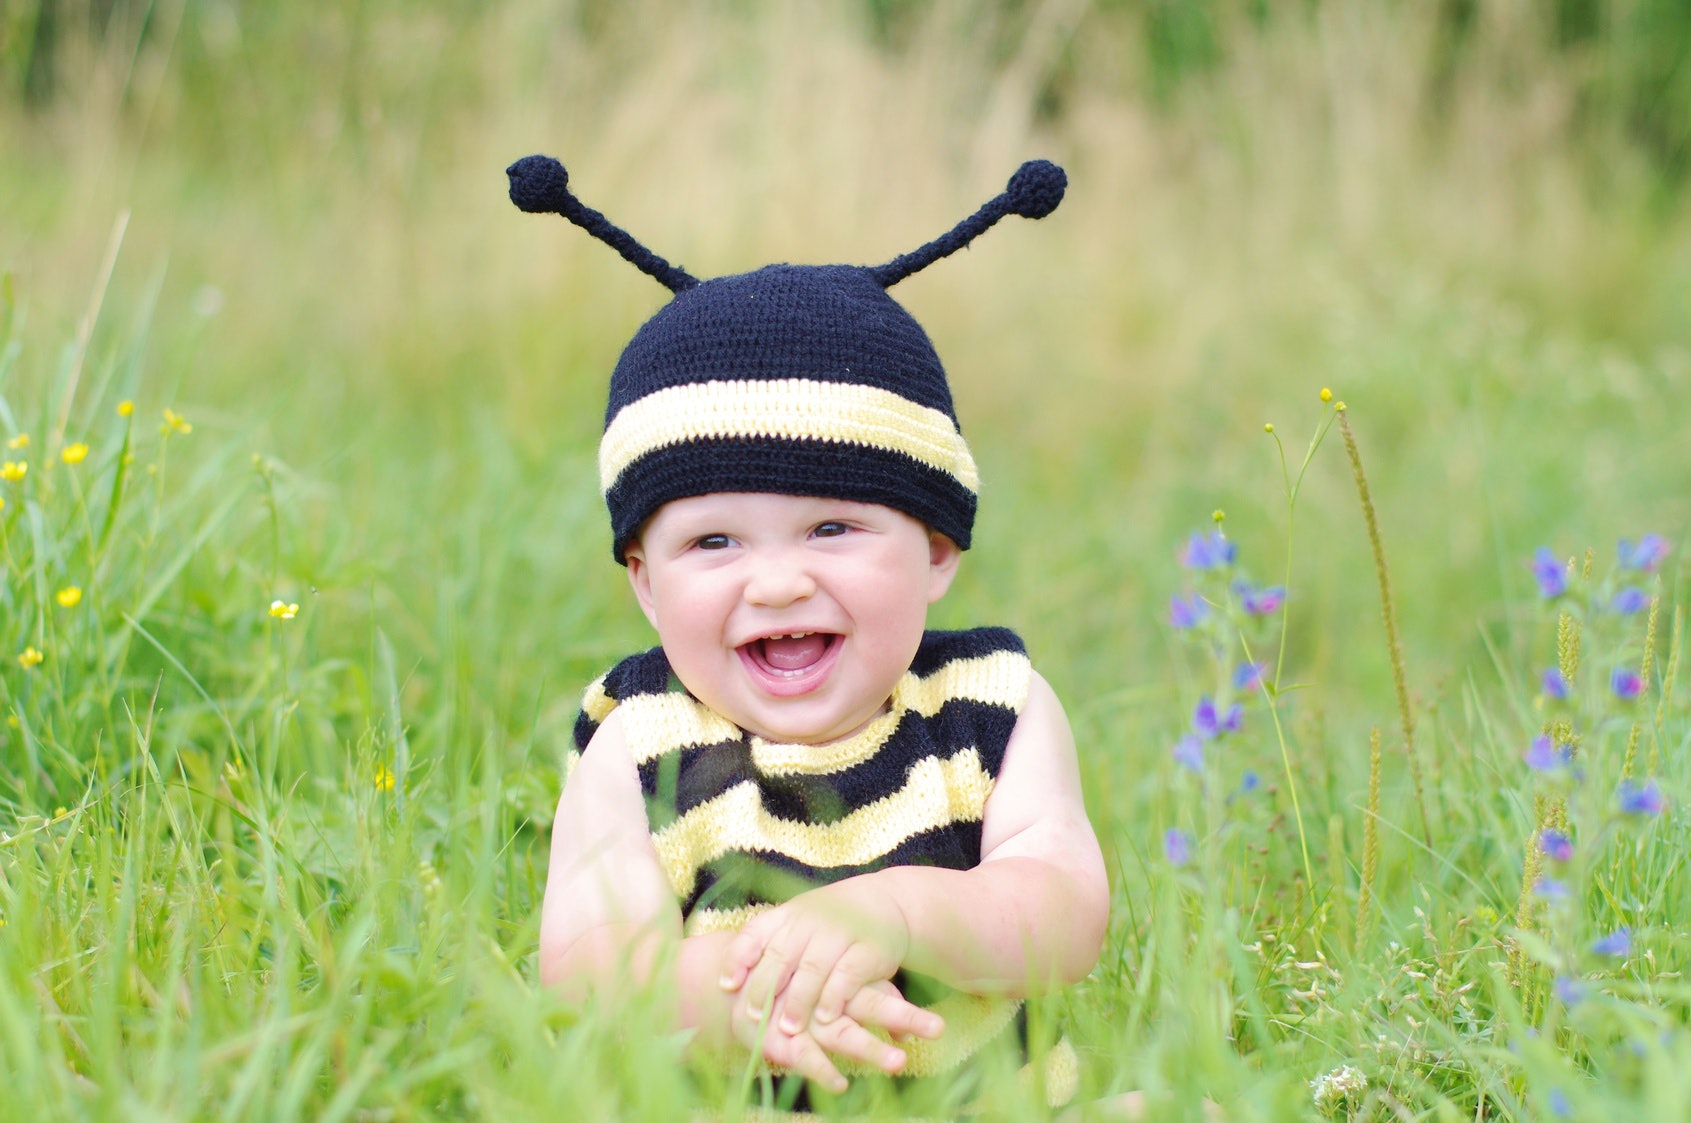 sc 1 st  Romper & 9 Bee Halloween Costumes For Babies To Buy